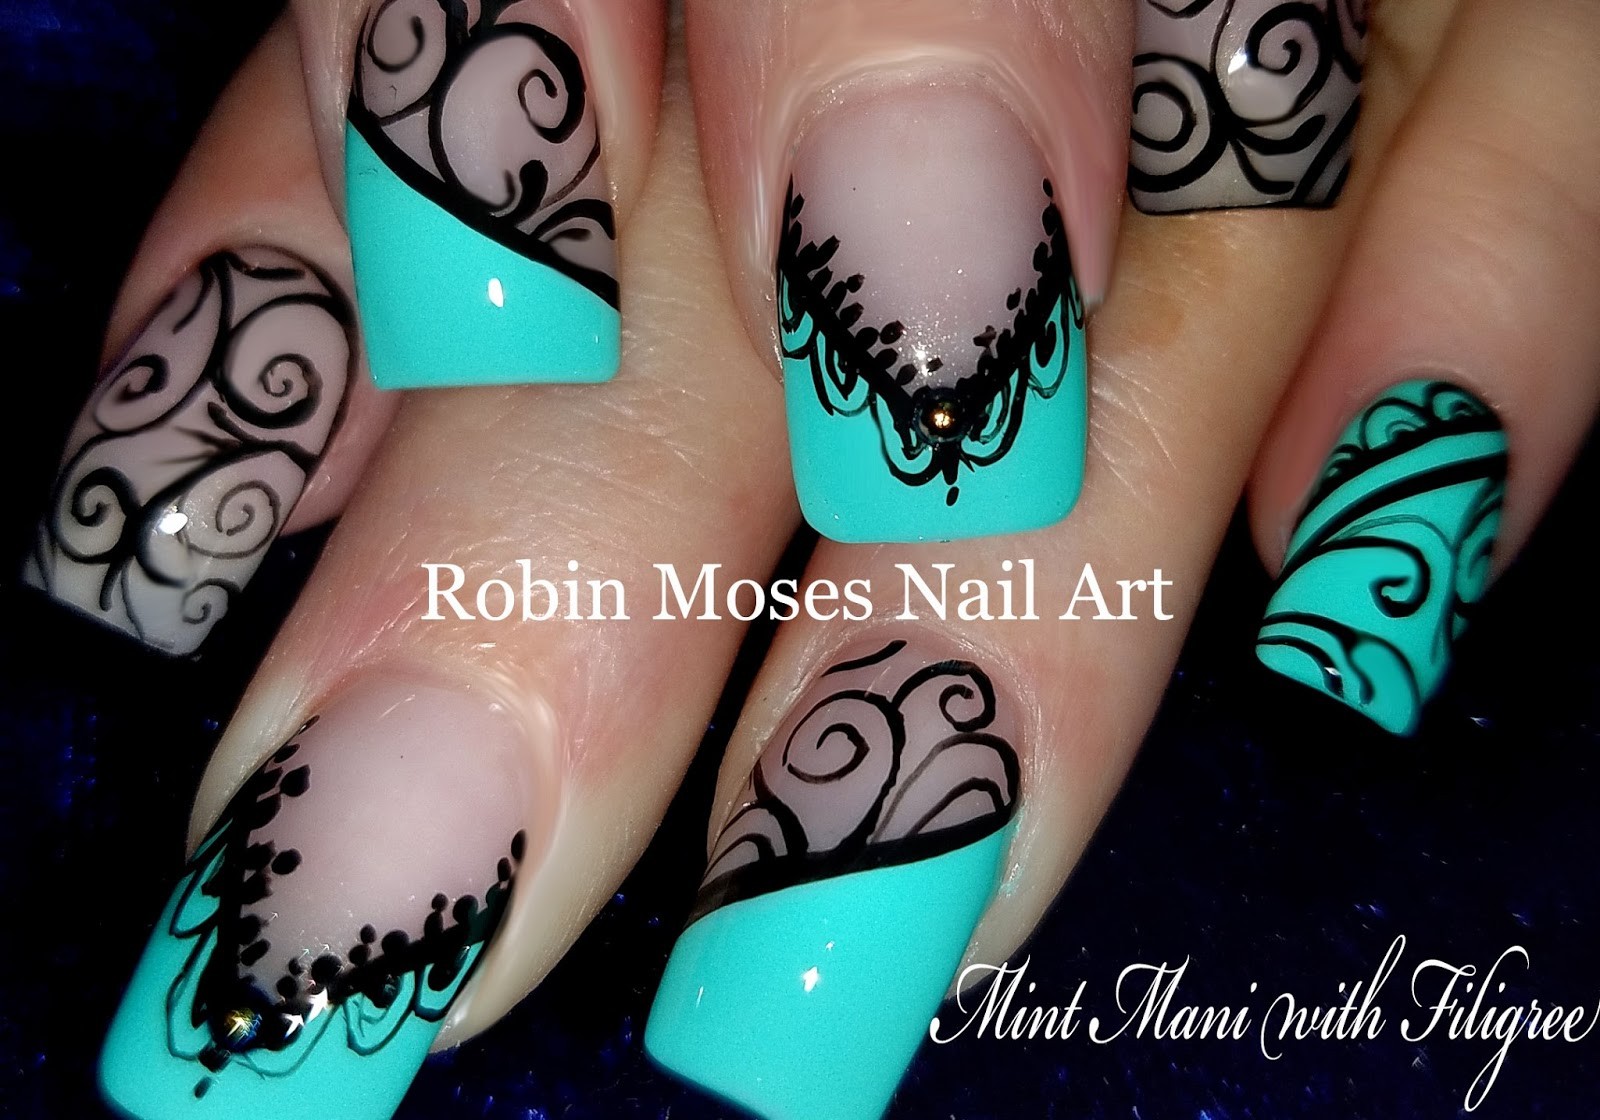 Robin moses nail art black lace mint mani diy hand painted nail black lace mint mani diy hand painted nail art design tutorial prinsesfo Image collections